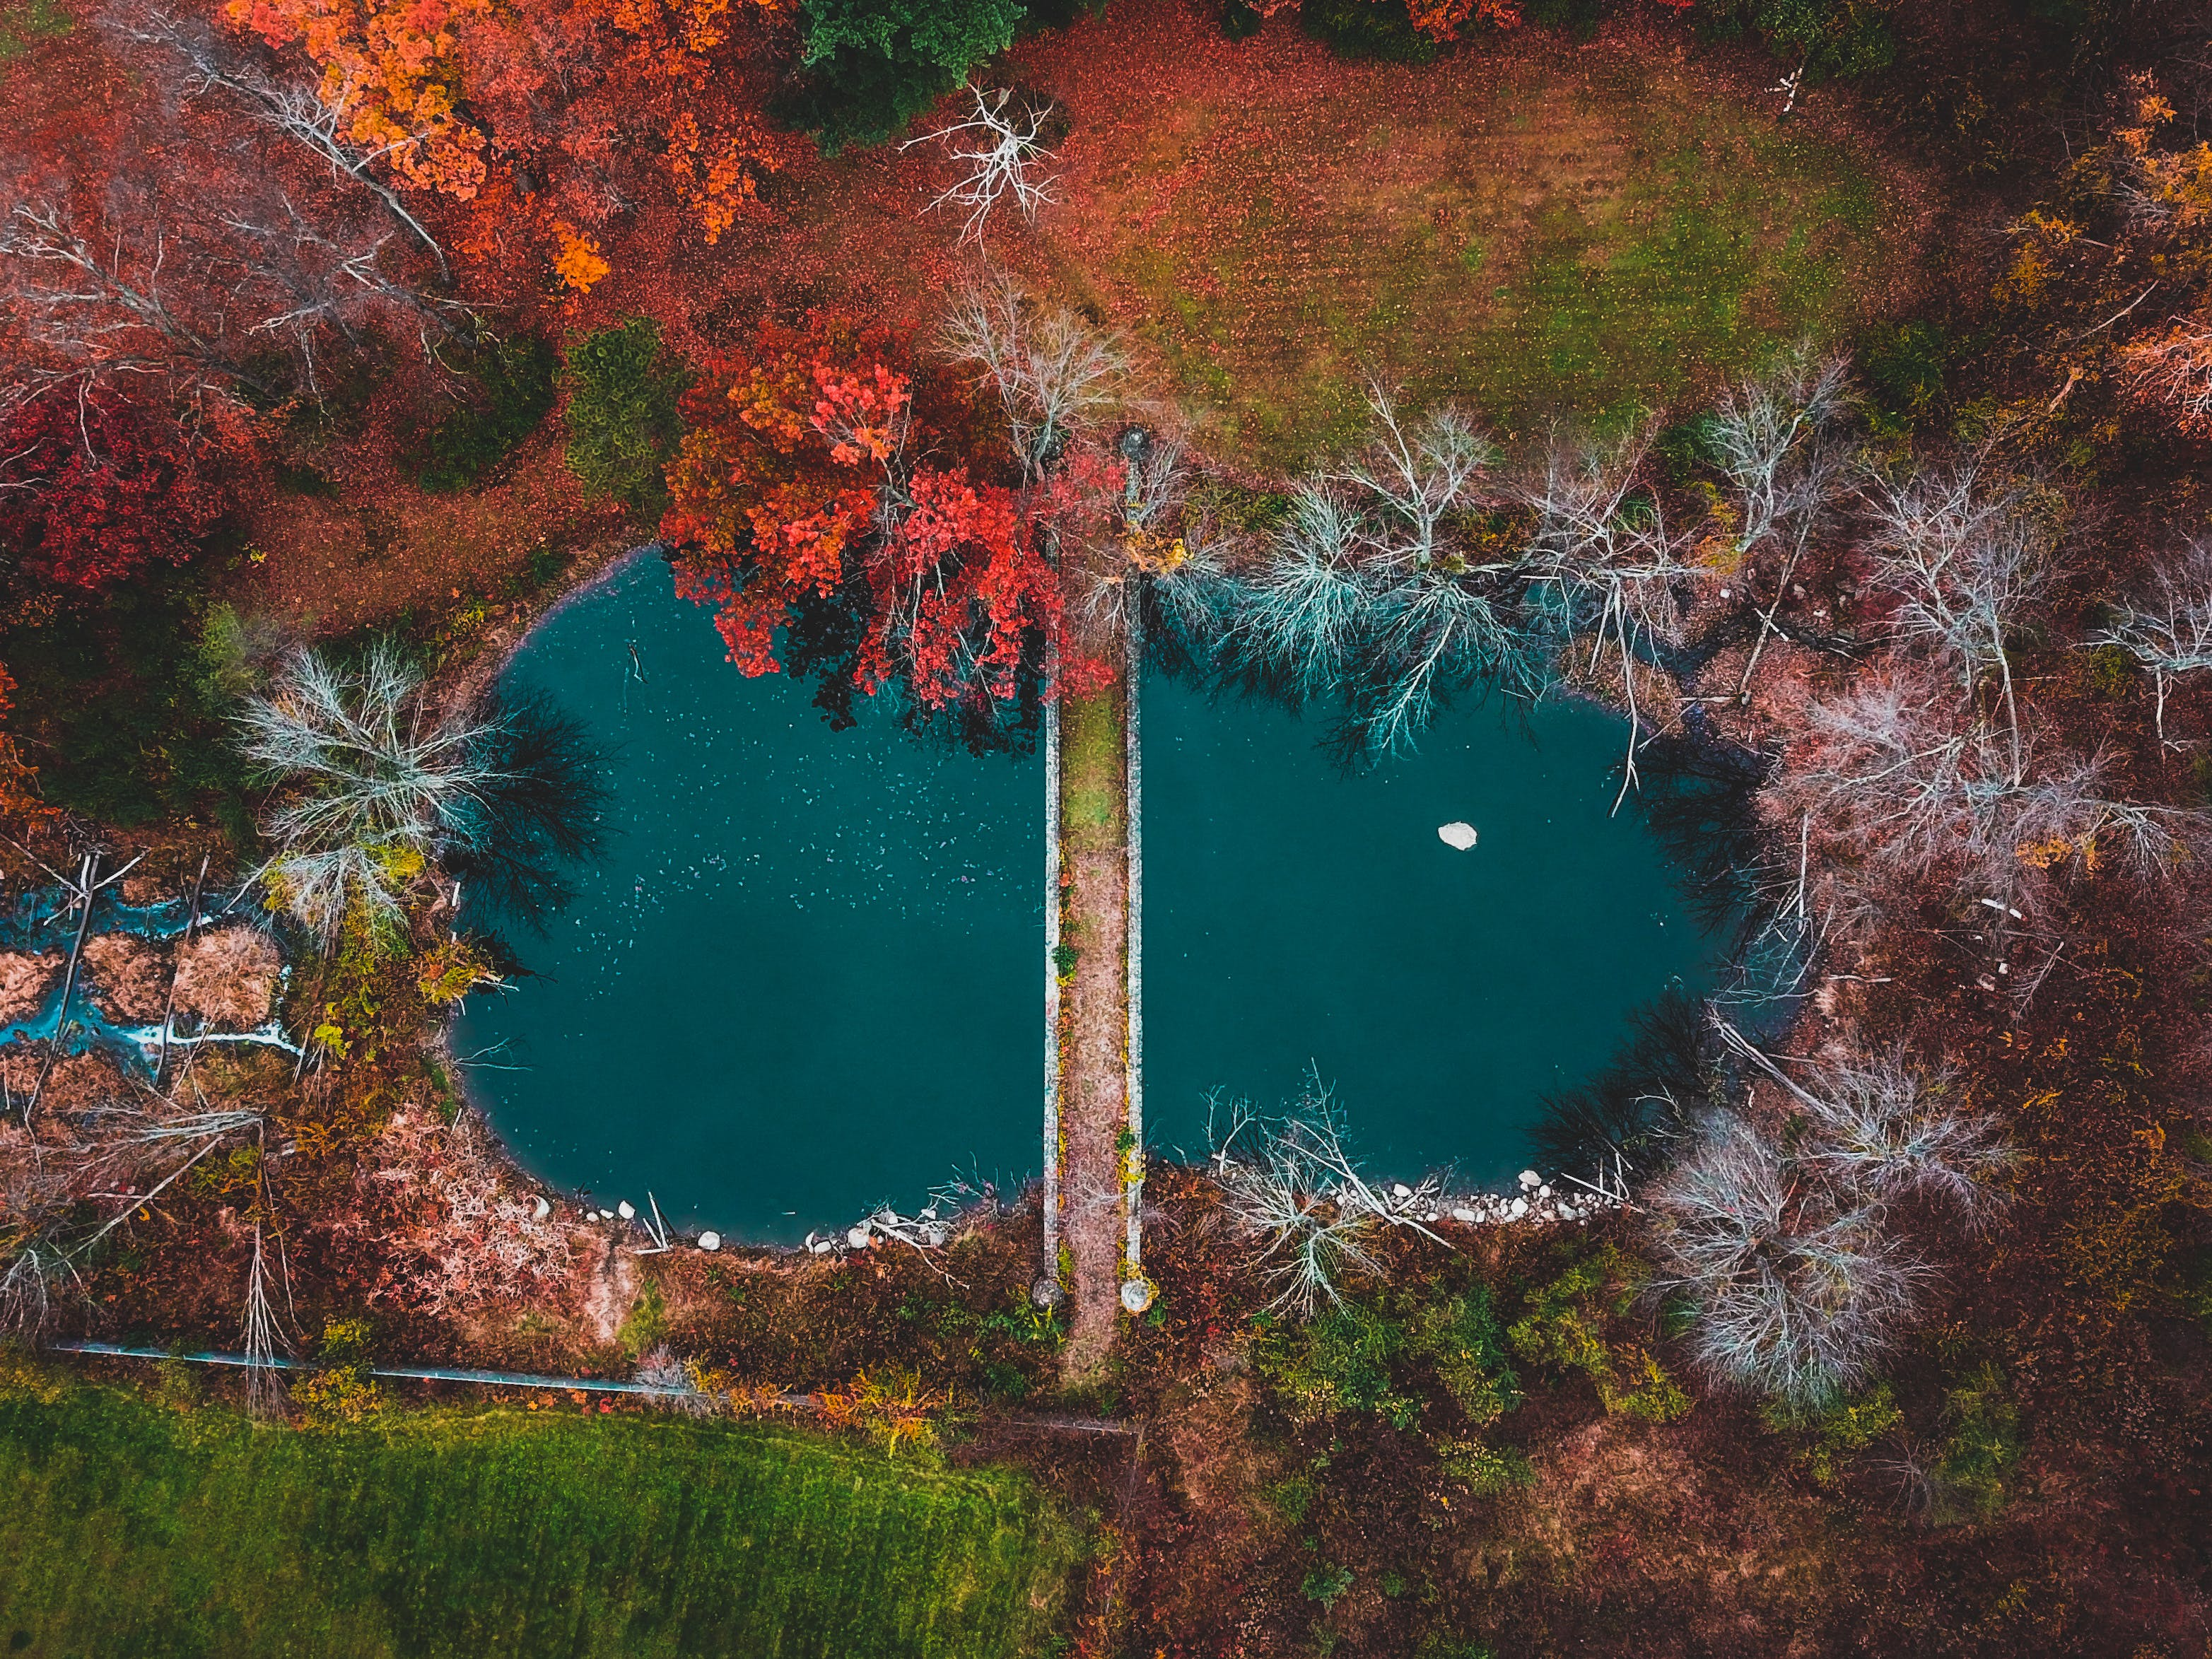 Top View of Bridge Across Body of Water